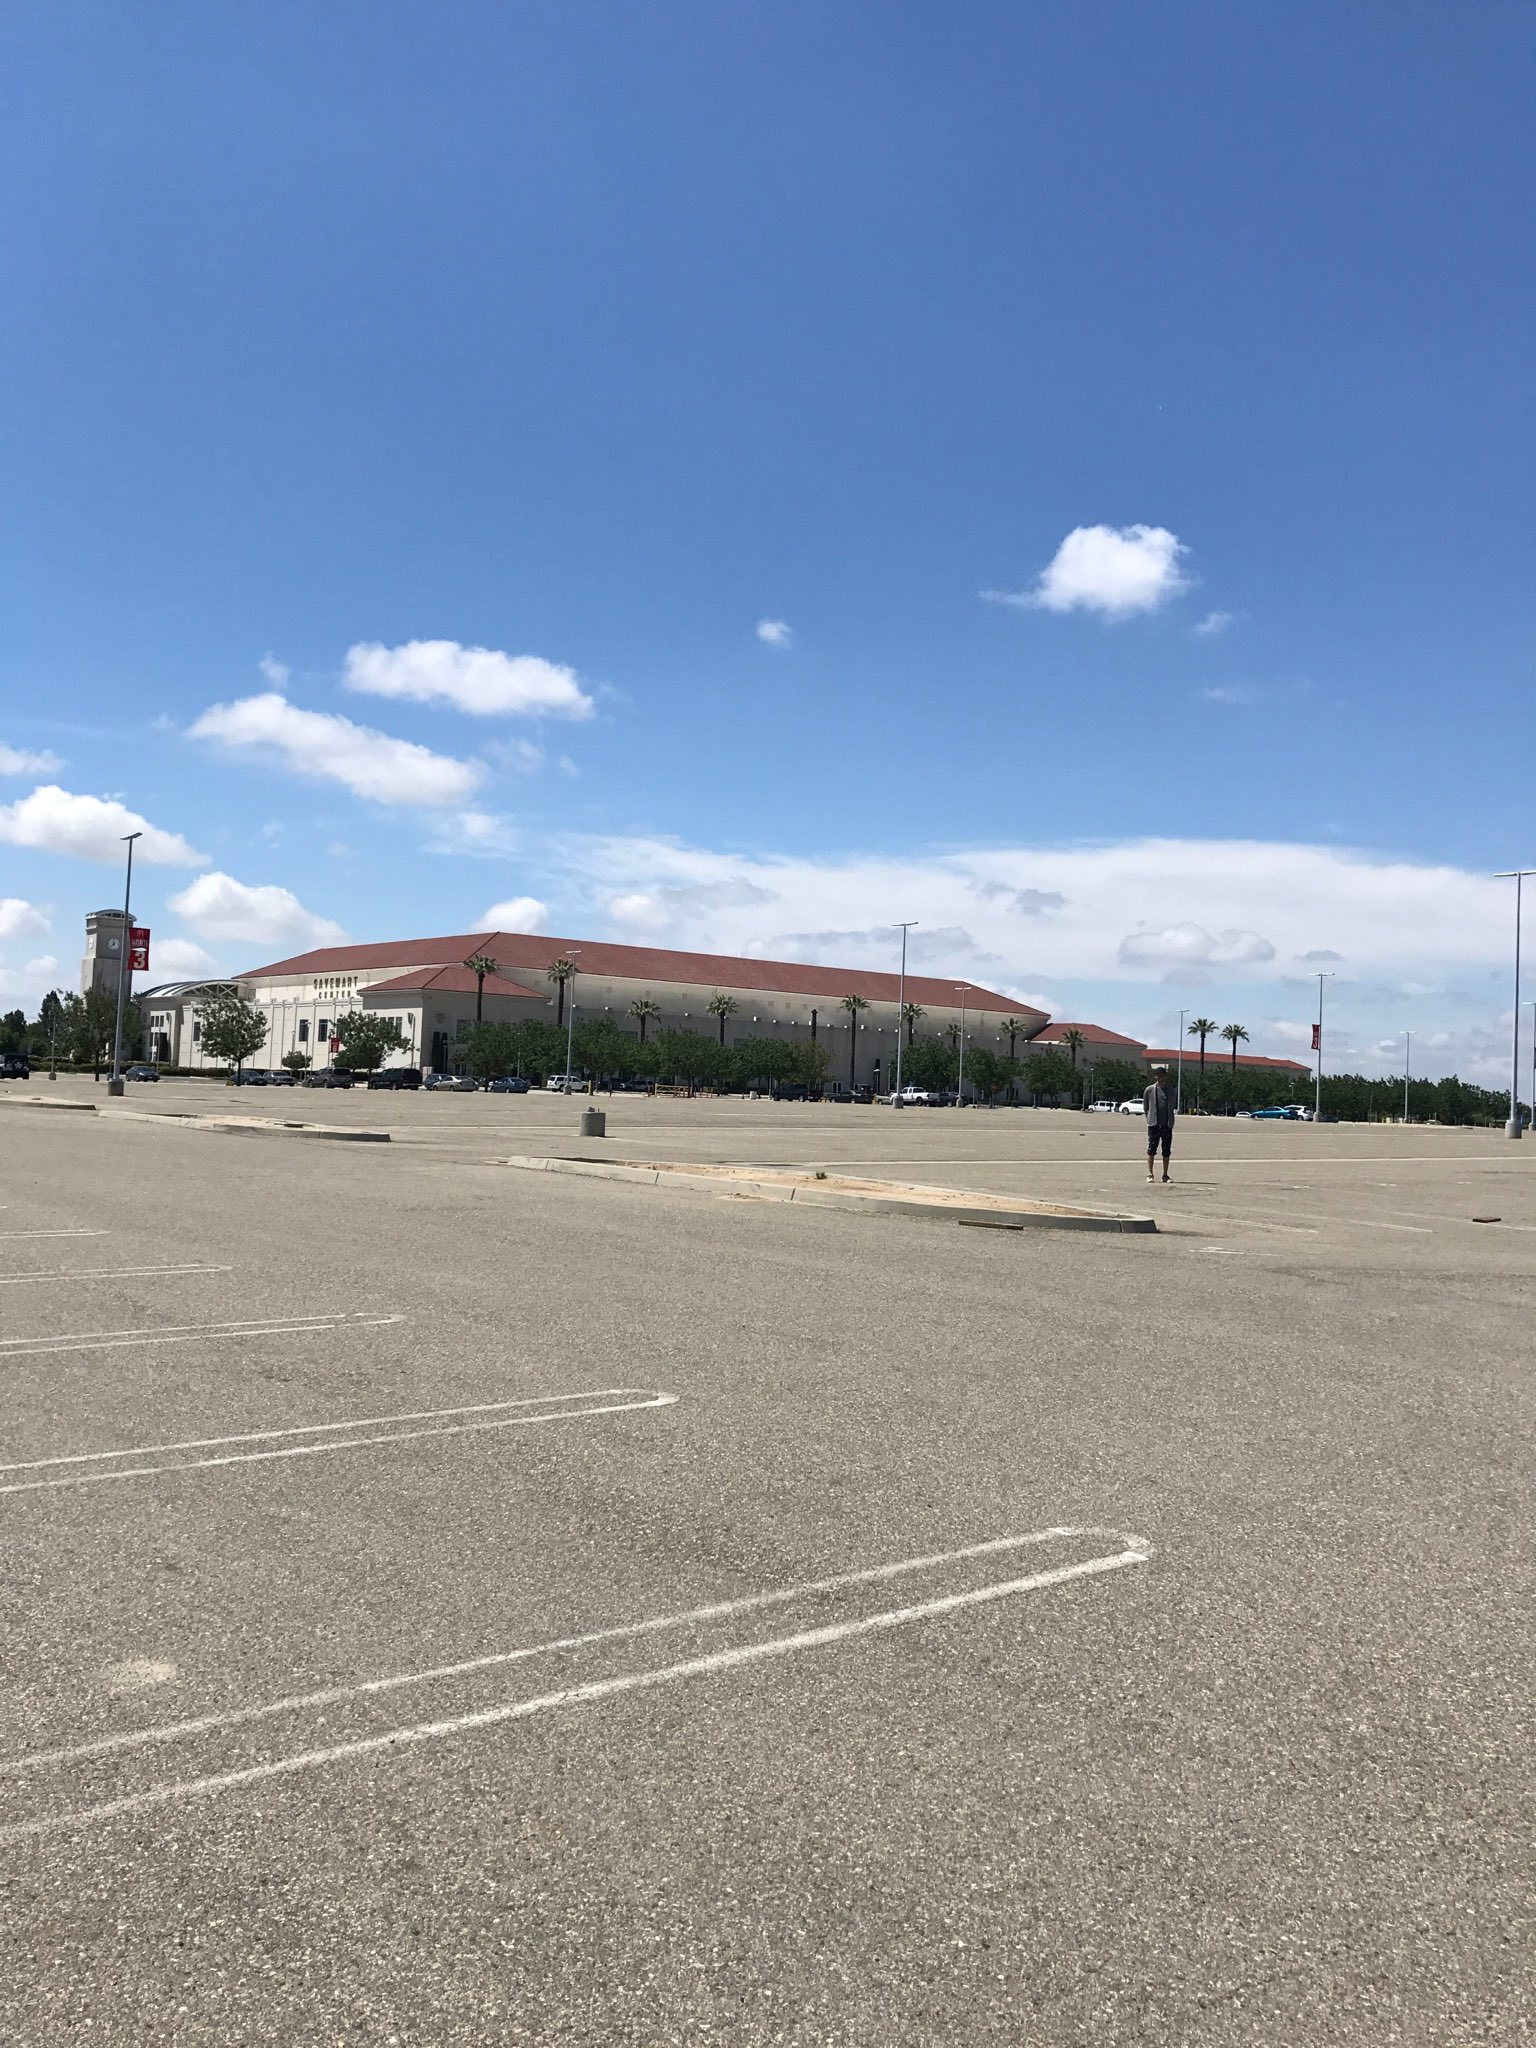 fresno, i'm saving you a parking spot. see you tonight for the last show of the tour!! @fresno_state https://t.co/3y7TmVtJA2